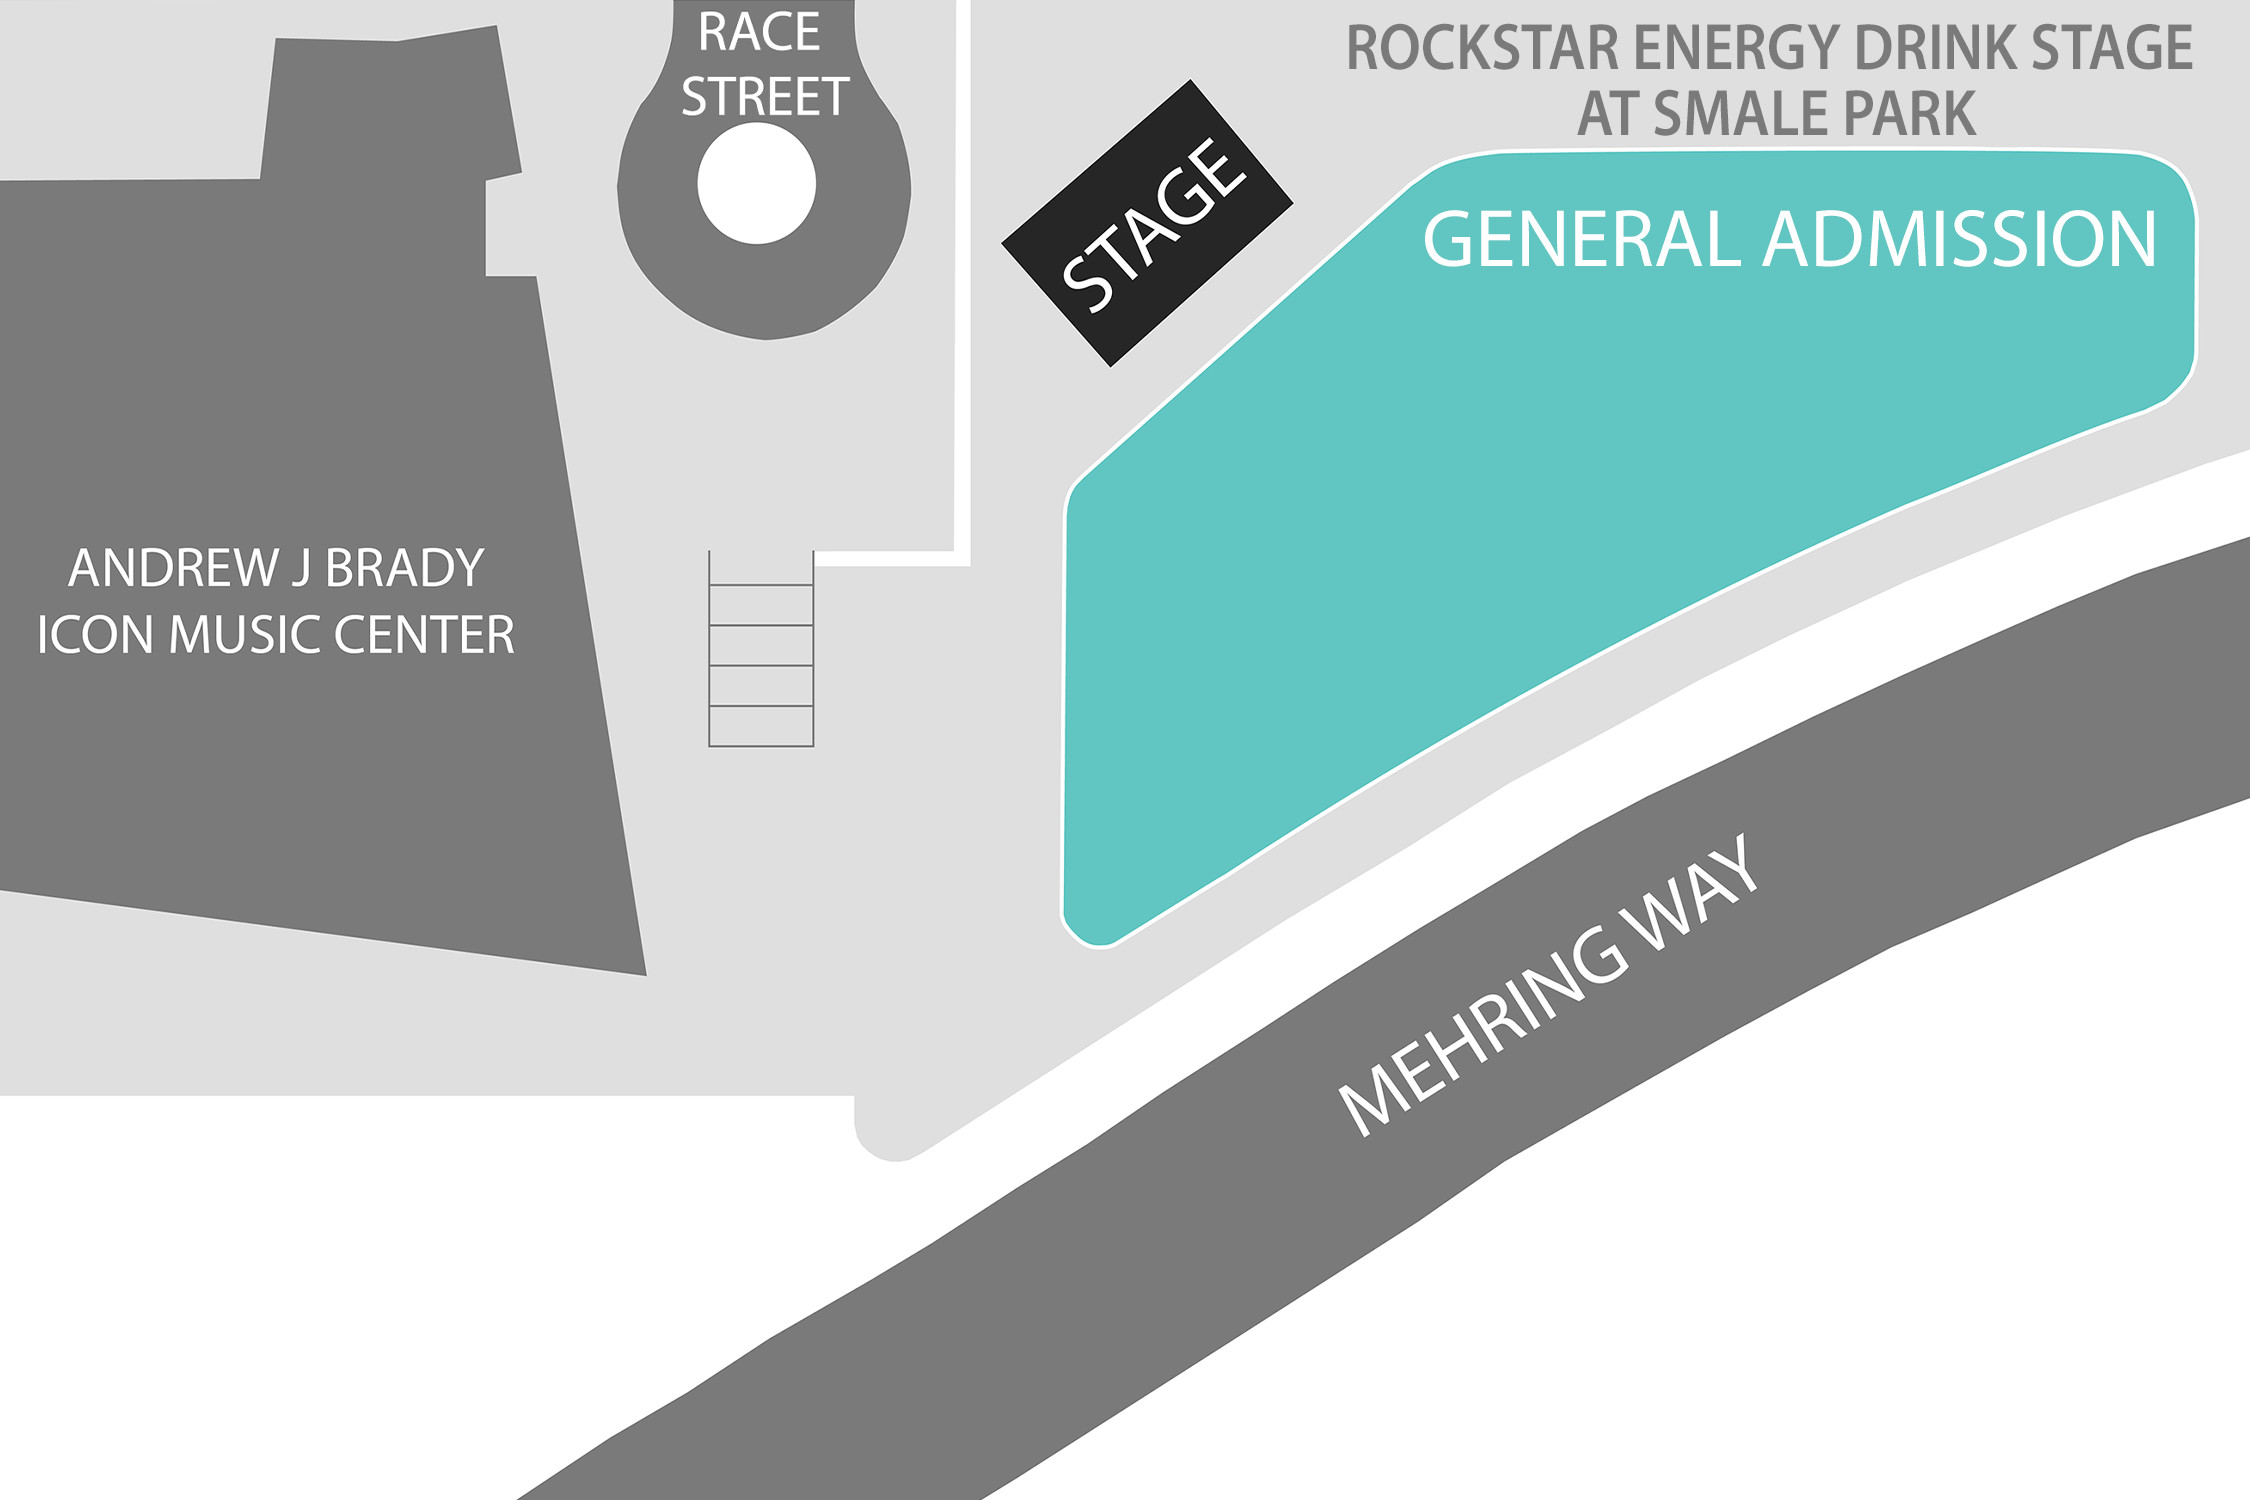 Rockstar Stage Energy Drink Stage at Smale Park - General Admission